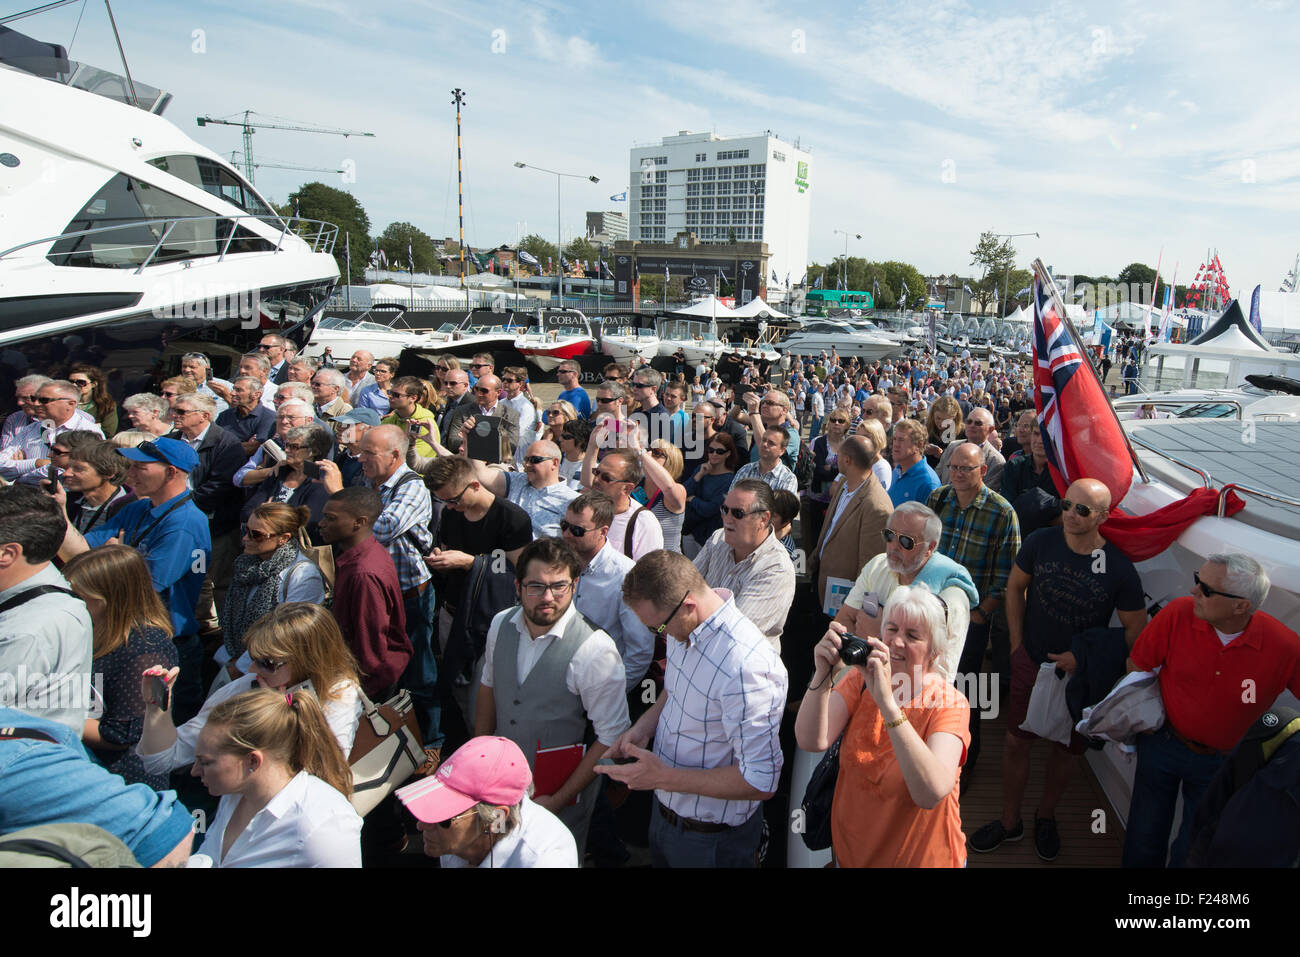 Southampton, UK. 11th September 2015. Southampton Boat Show 2015. Crowds of visitors flock to the Sunseeker stand Stock Photo